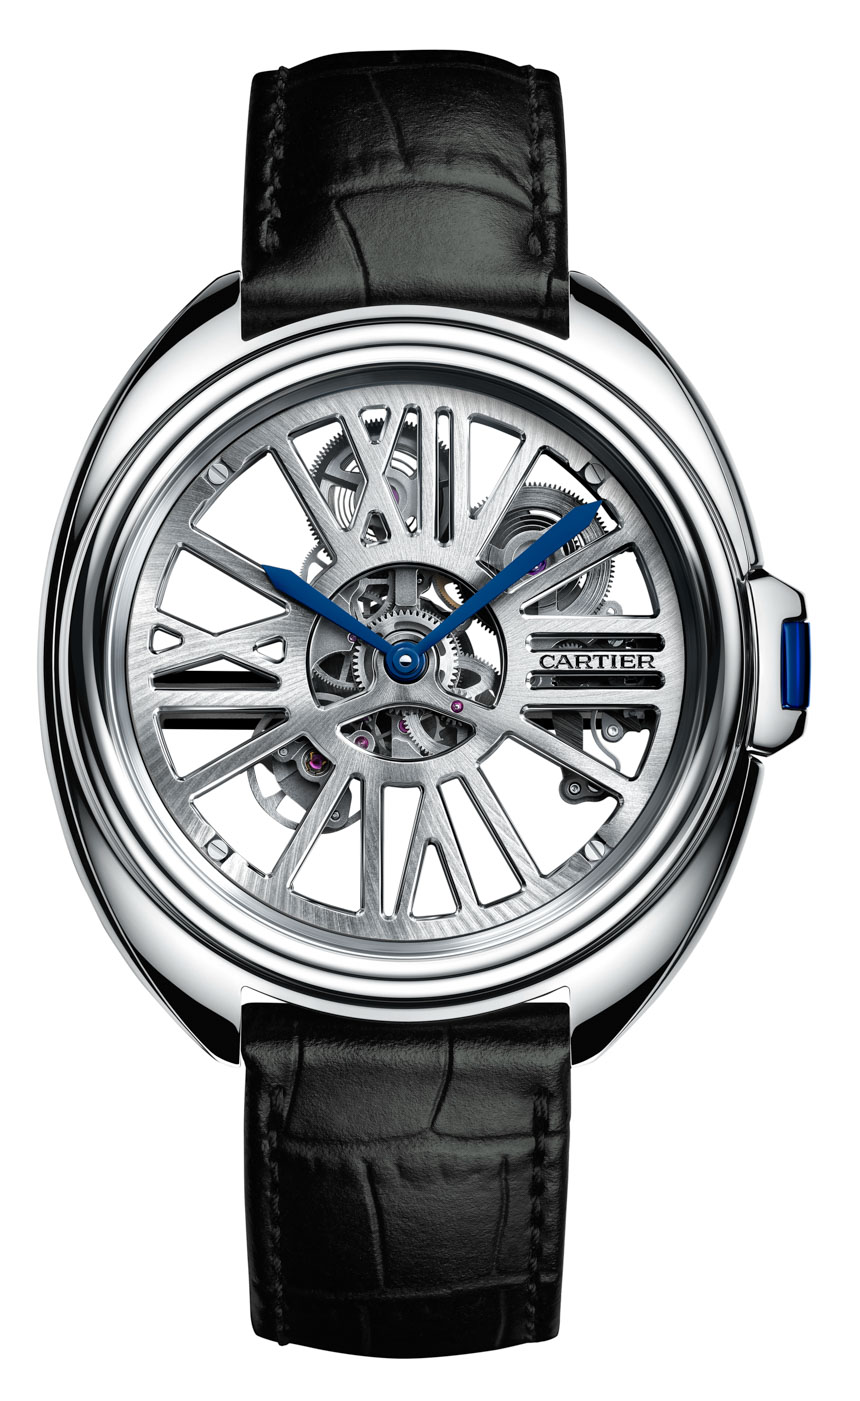 Steel Case Cartier Clé Automatic Skeleton Watch Replica for Sale